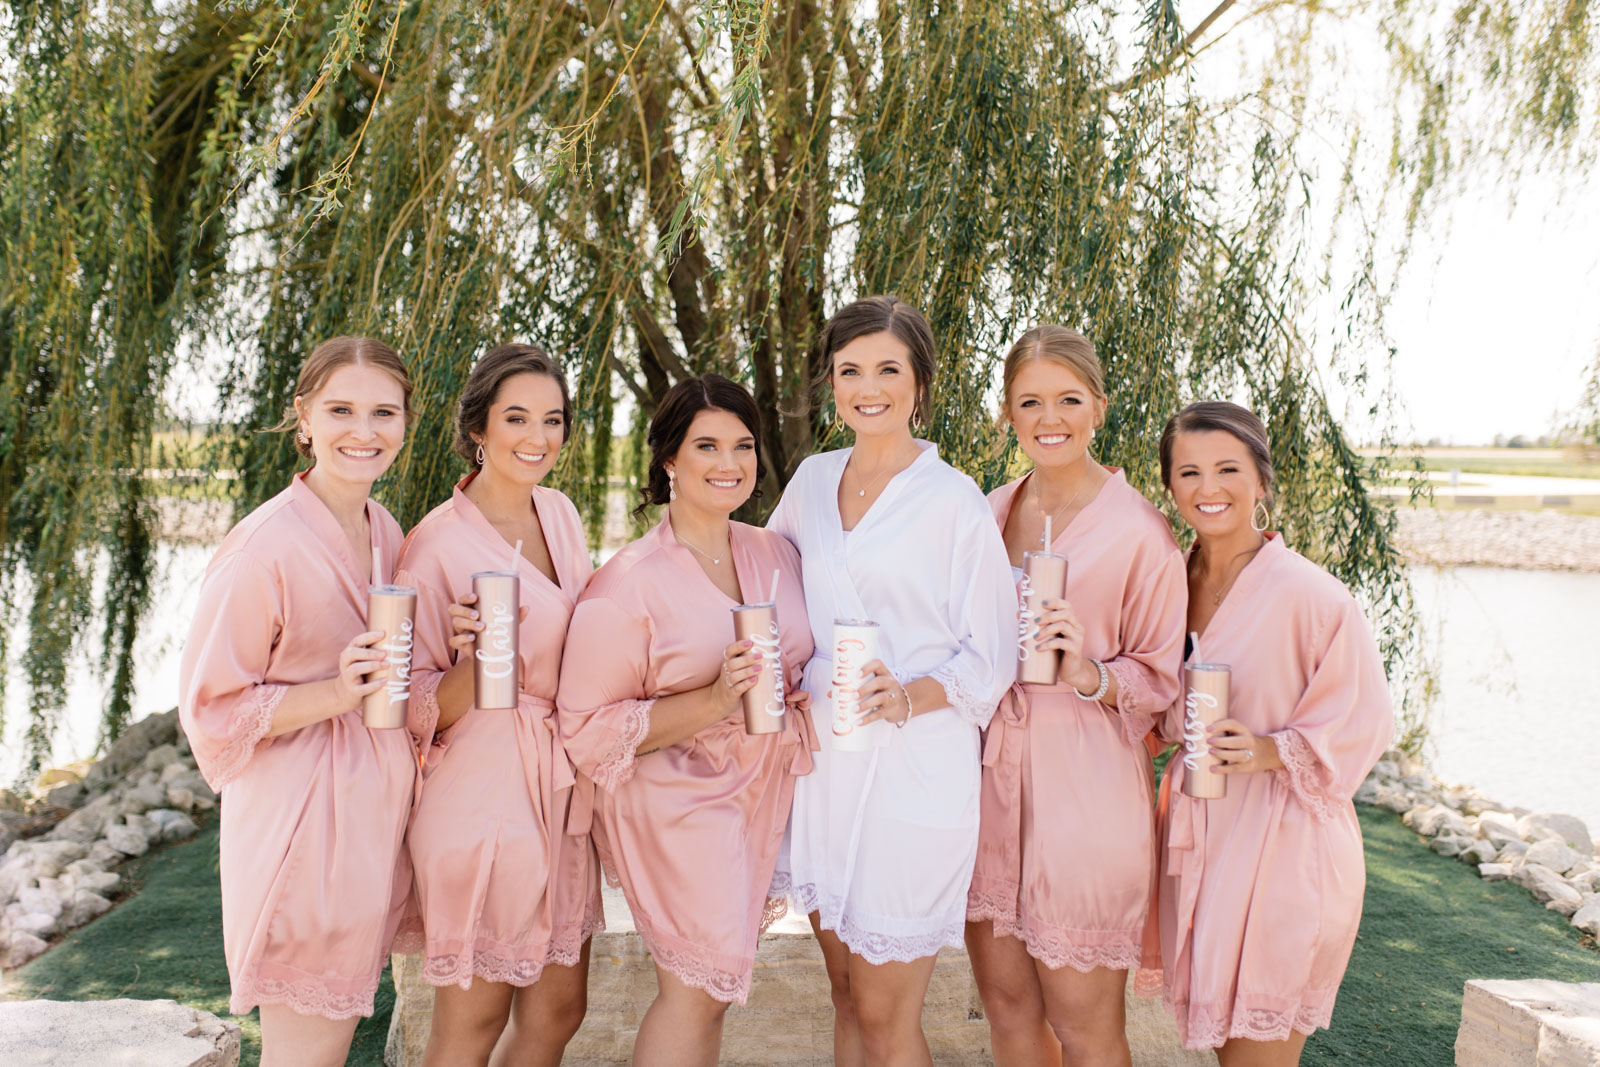 bridesmaids with matching pink robes epic event center wedding venue